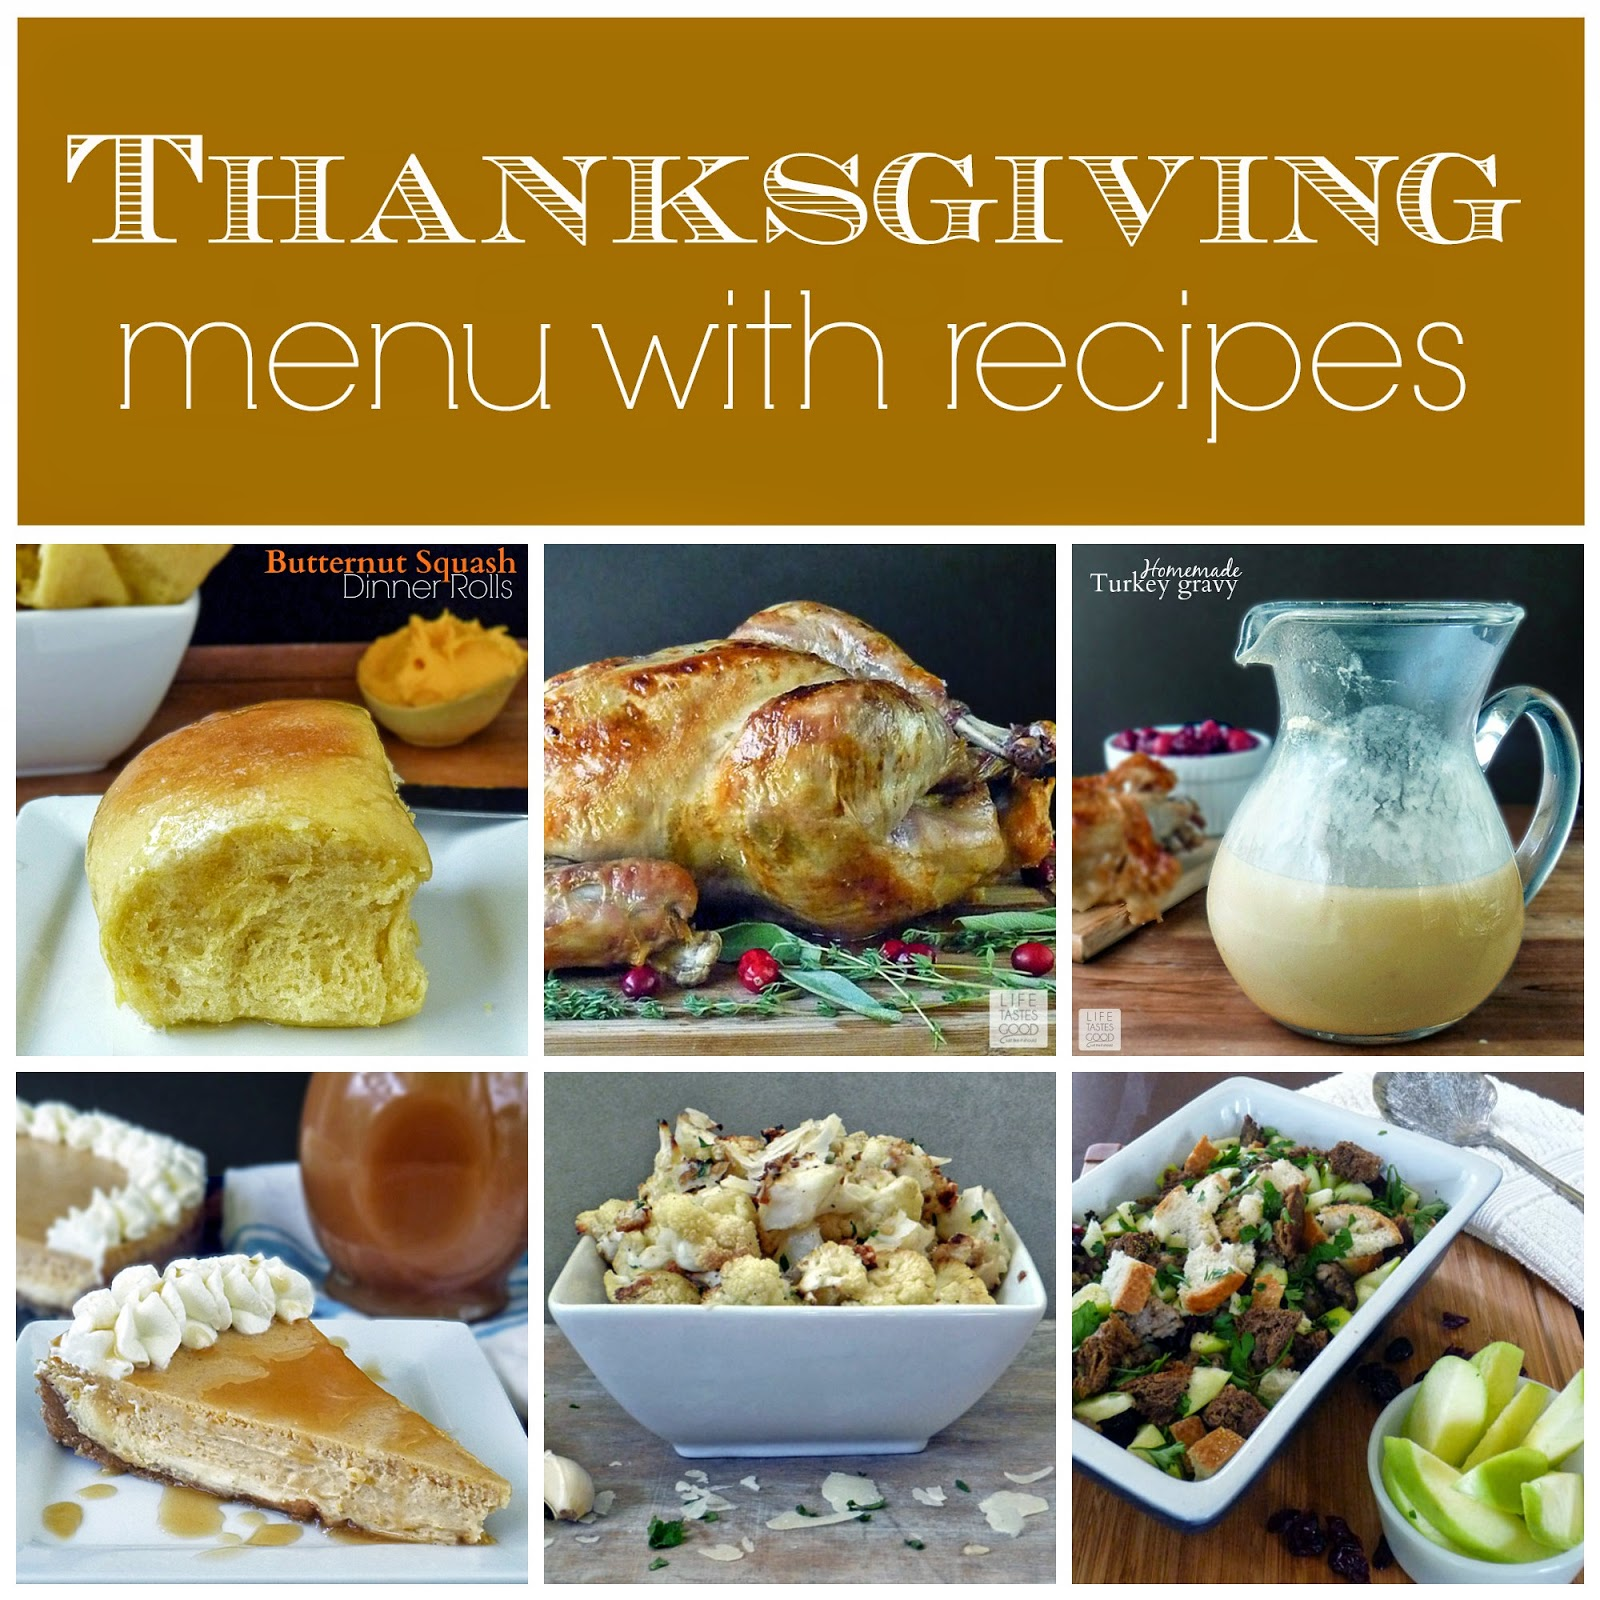 Thanksgiving Dinner Menu and Recipes | by Life Tastes Good brings together all the recipes you need for Thanksgiving in one place to make things easier on the big day.